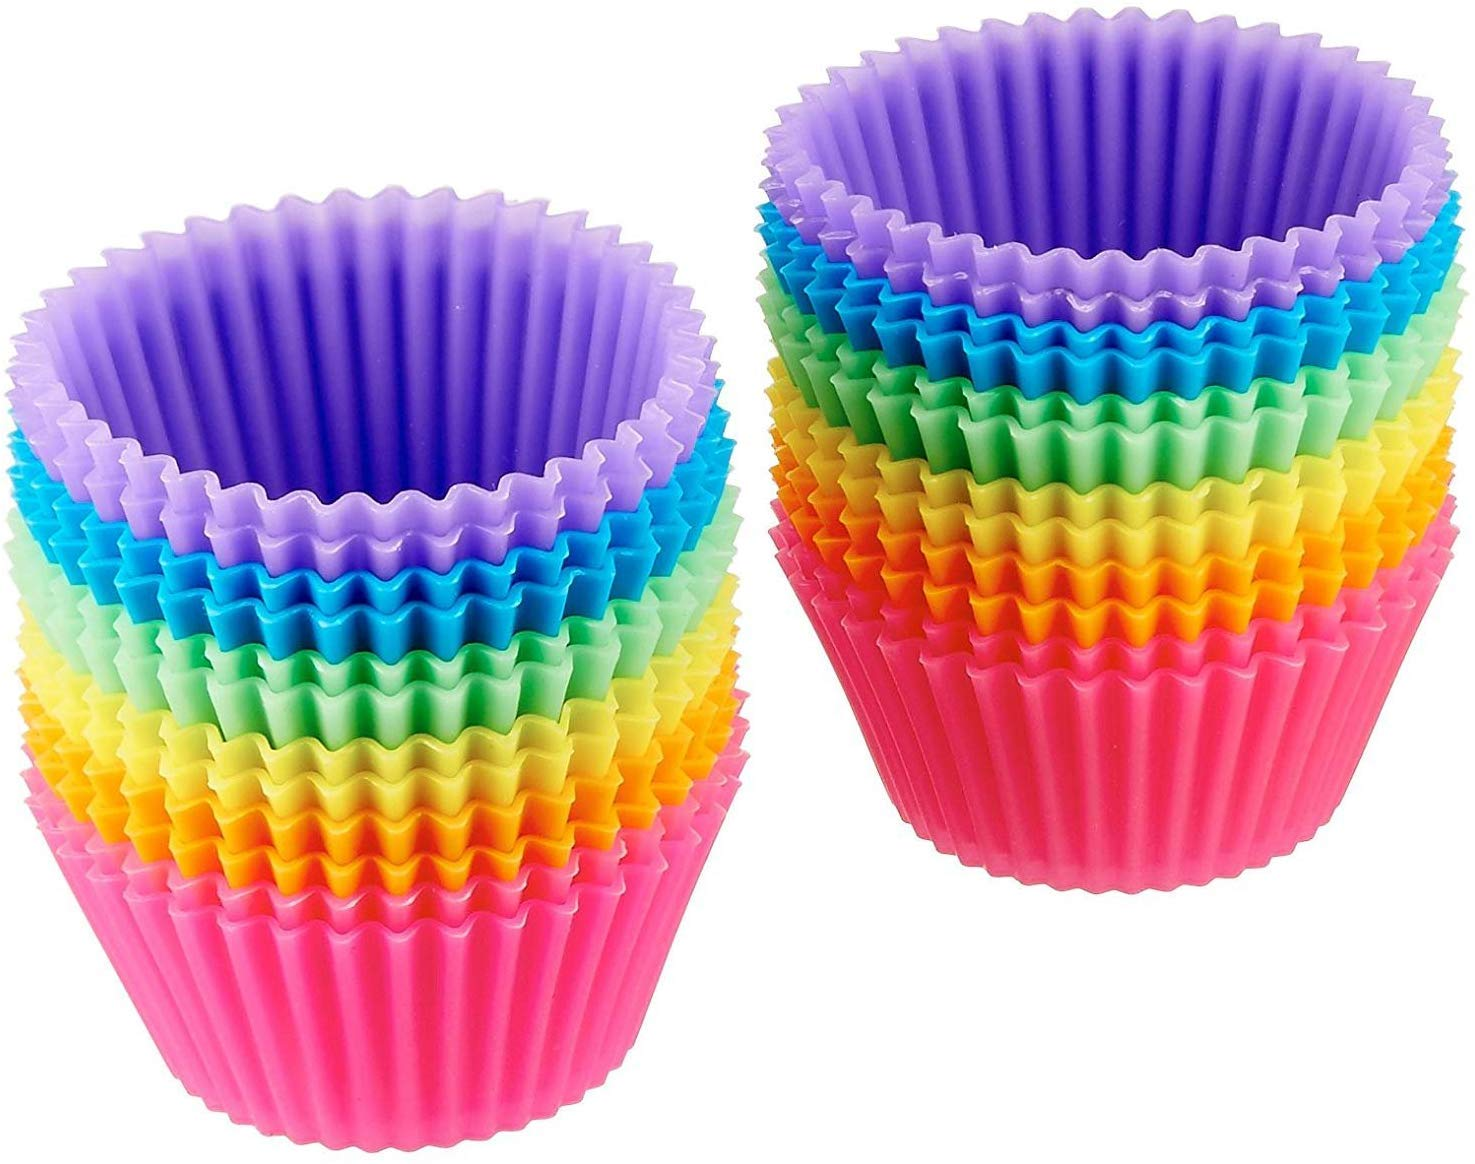 Amazon Basics Reusable Silicone Baking Cups, Pack of 24, Multicolor